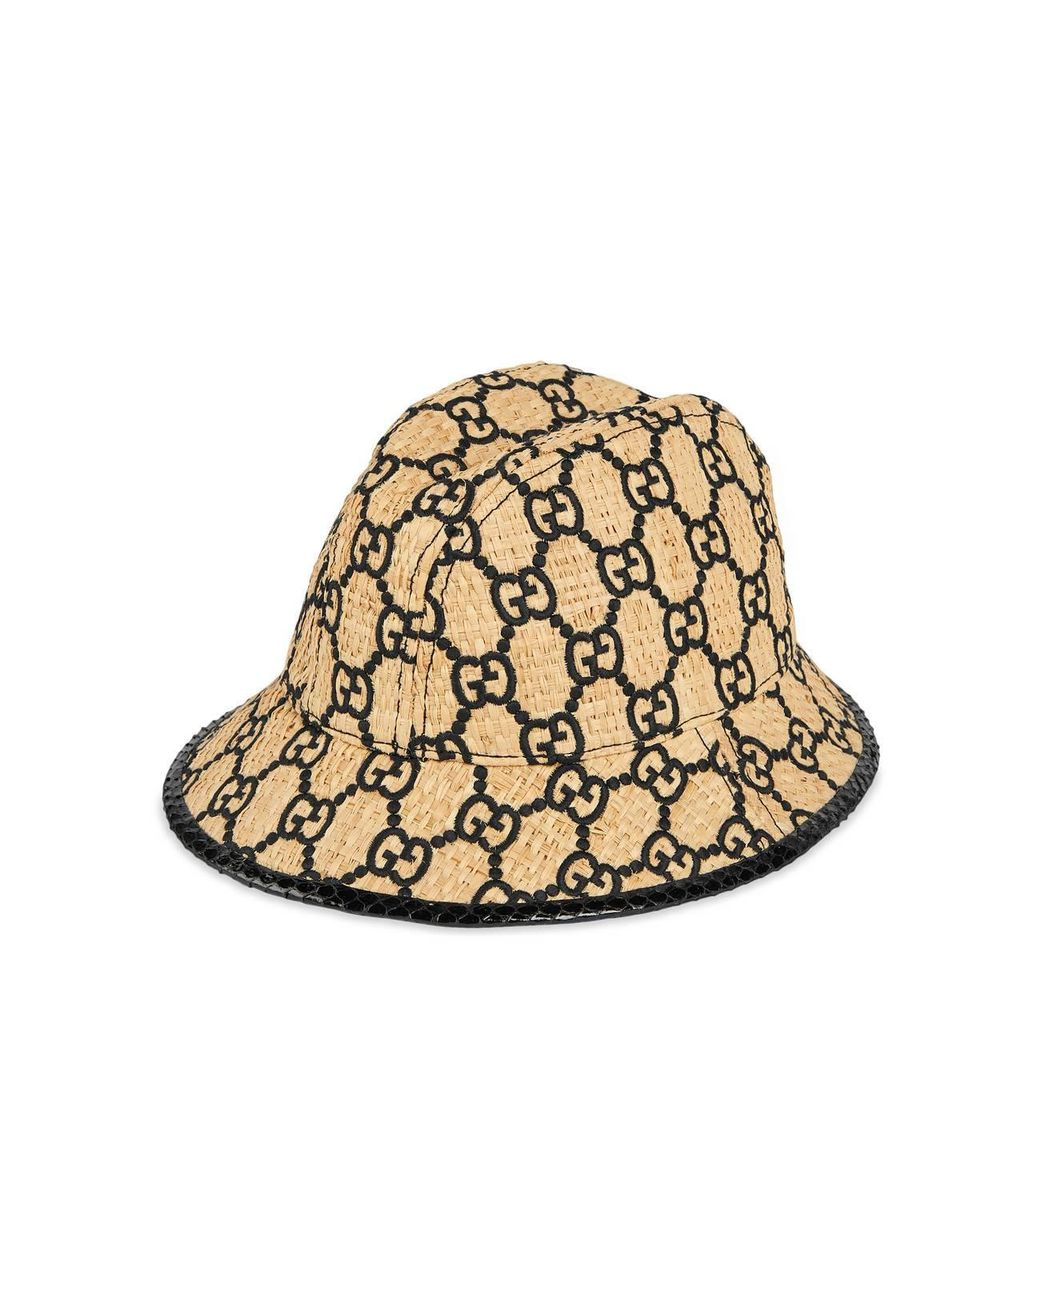 88a5c36be Women's Natural Gg Fedora Hat With Snakeskin